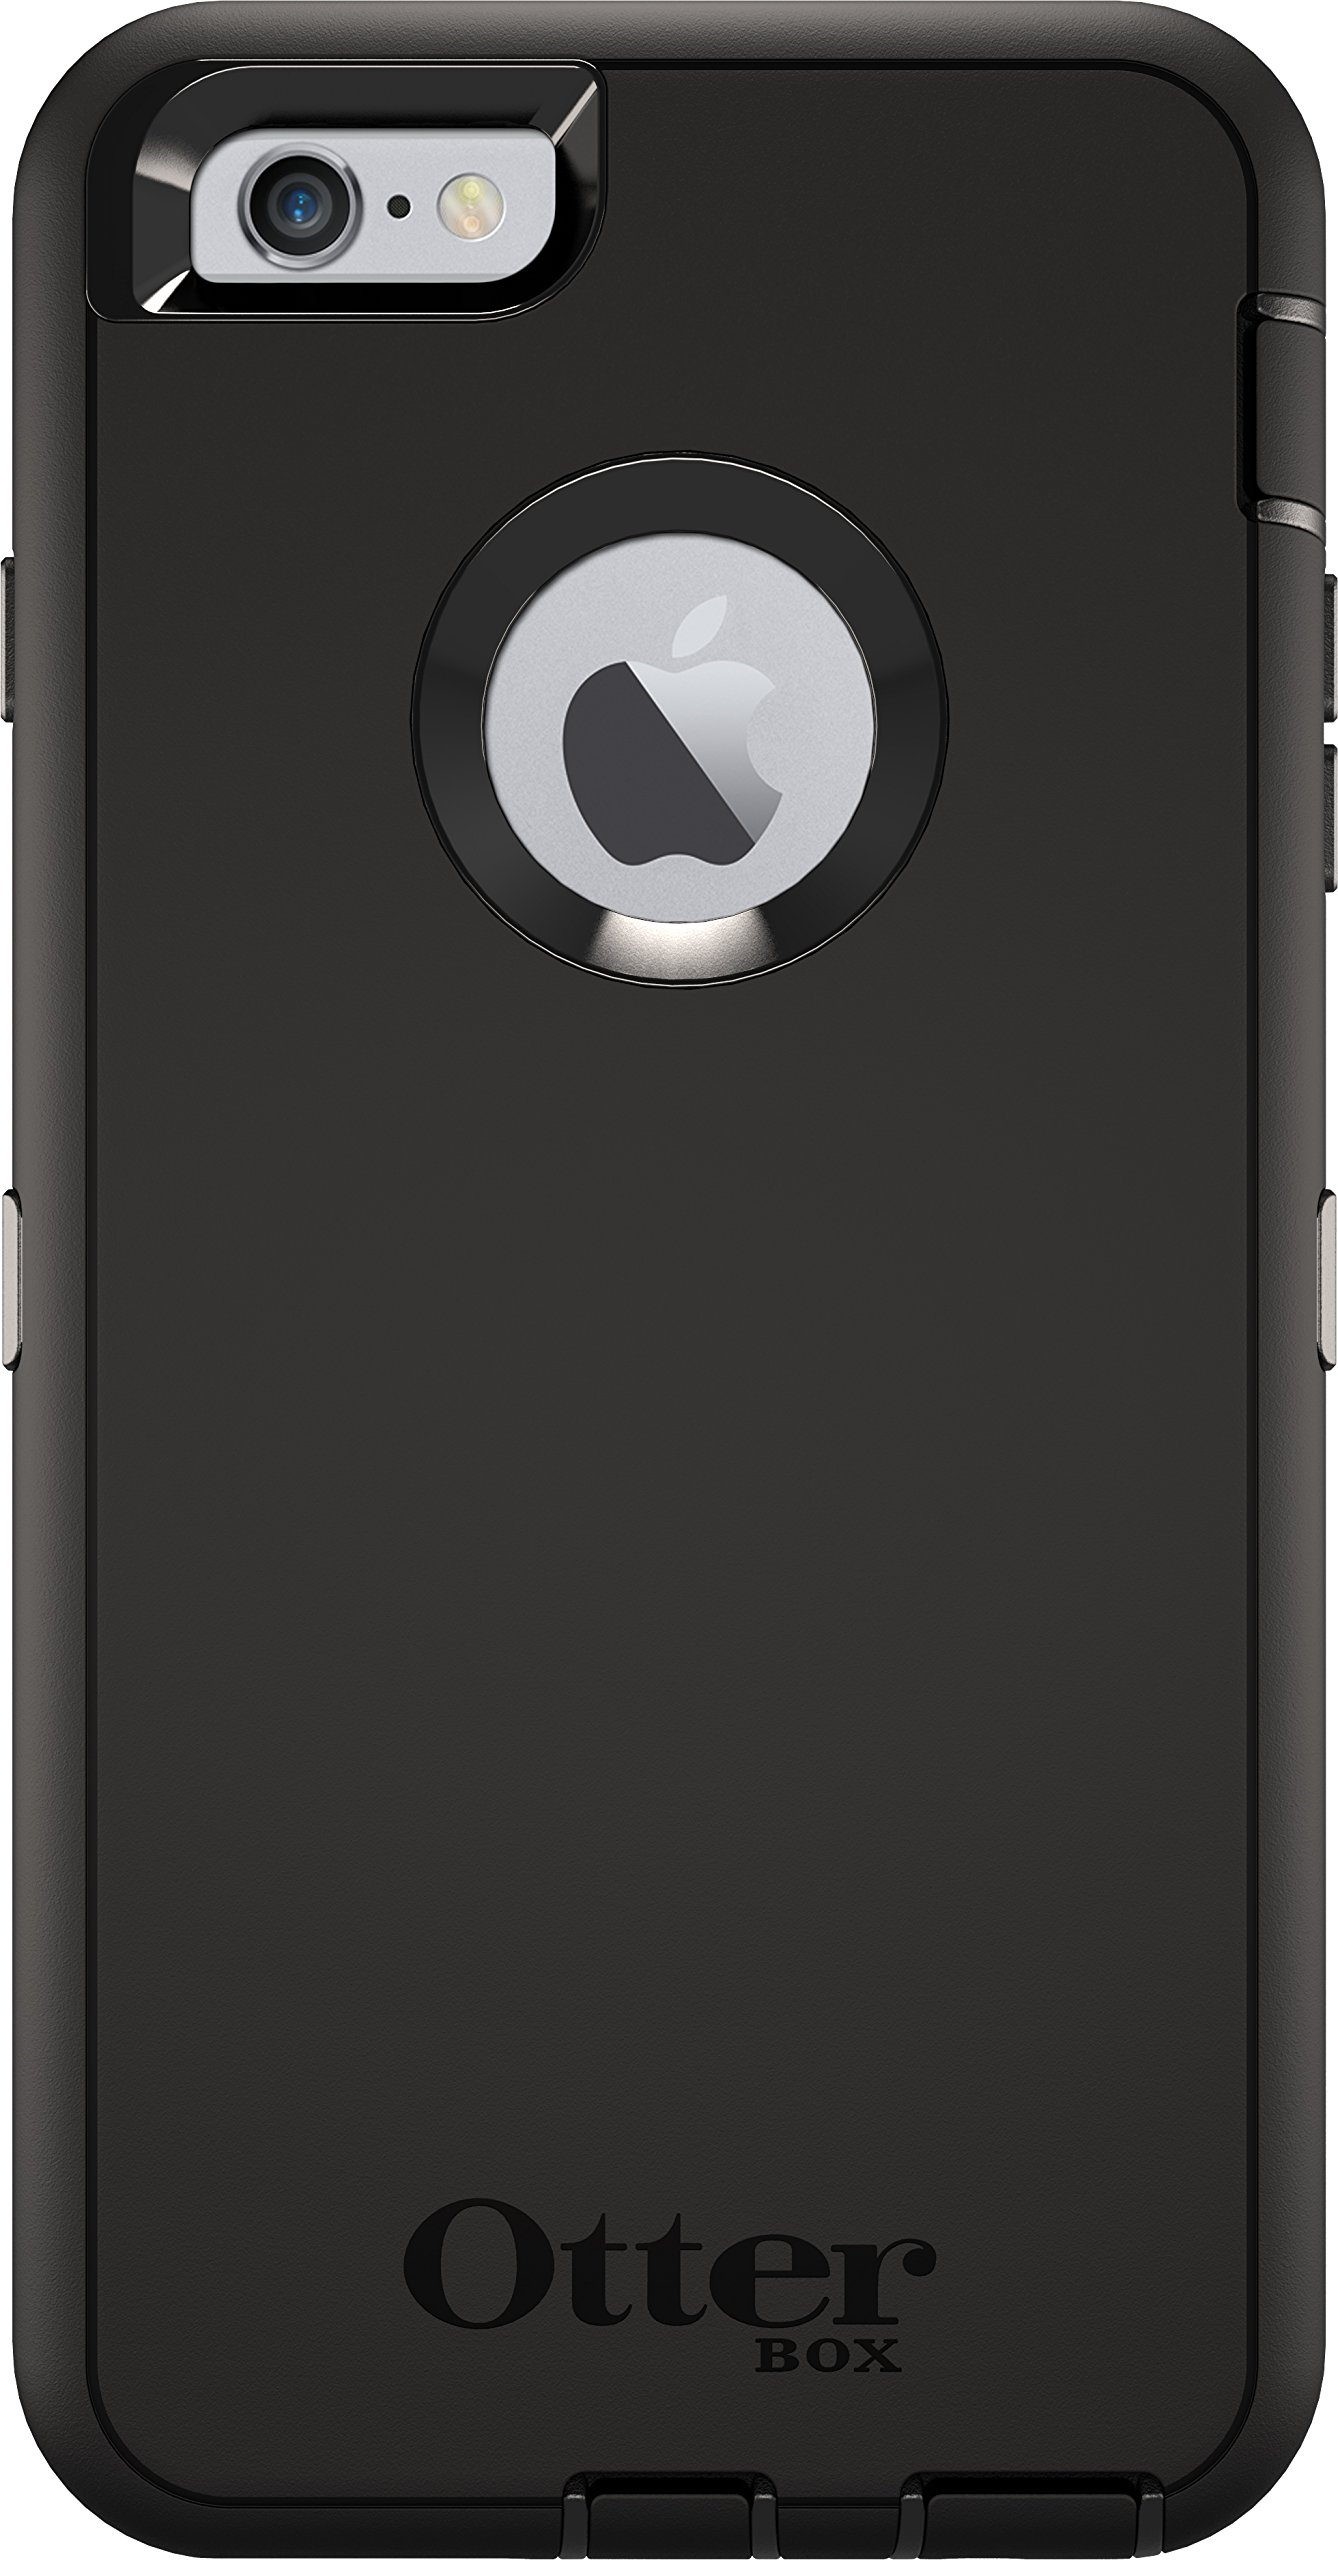 OtterBox DEFENDER iPhone 6 Plus/6s Plus Case - Retail Packaging - BLACK by OtterBox